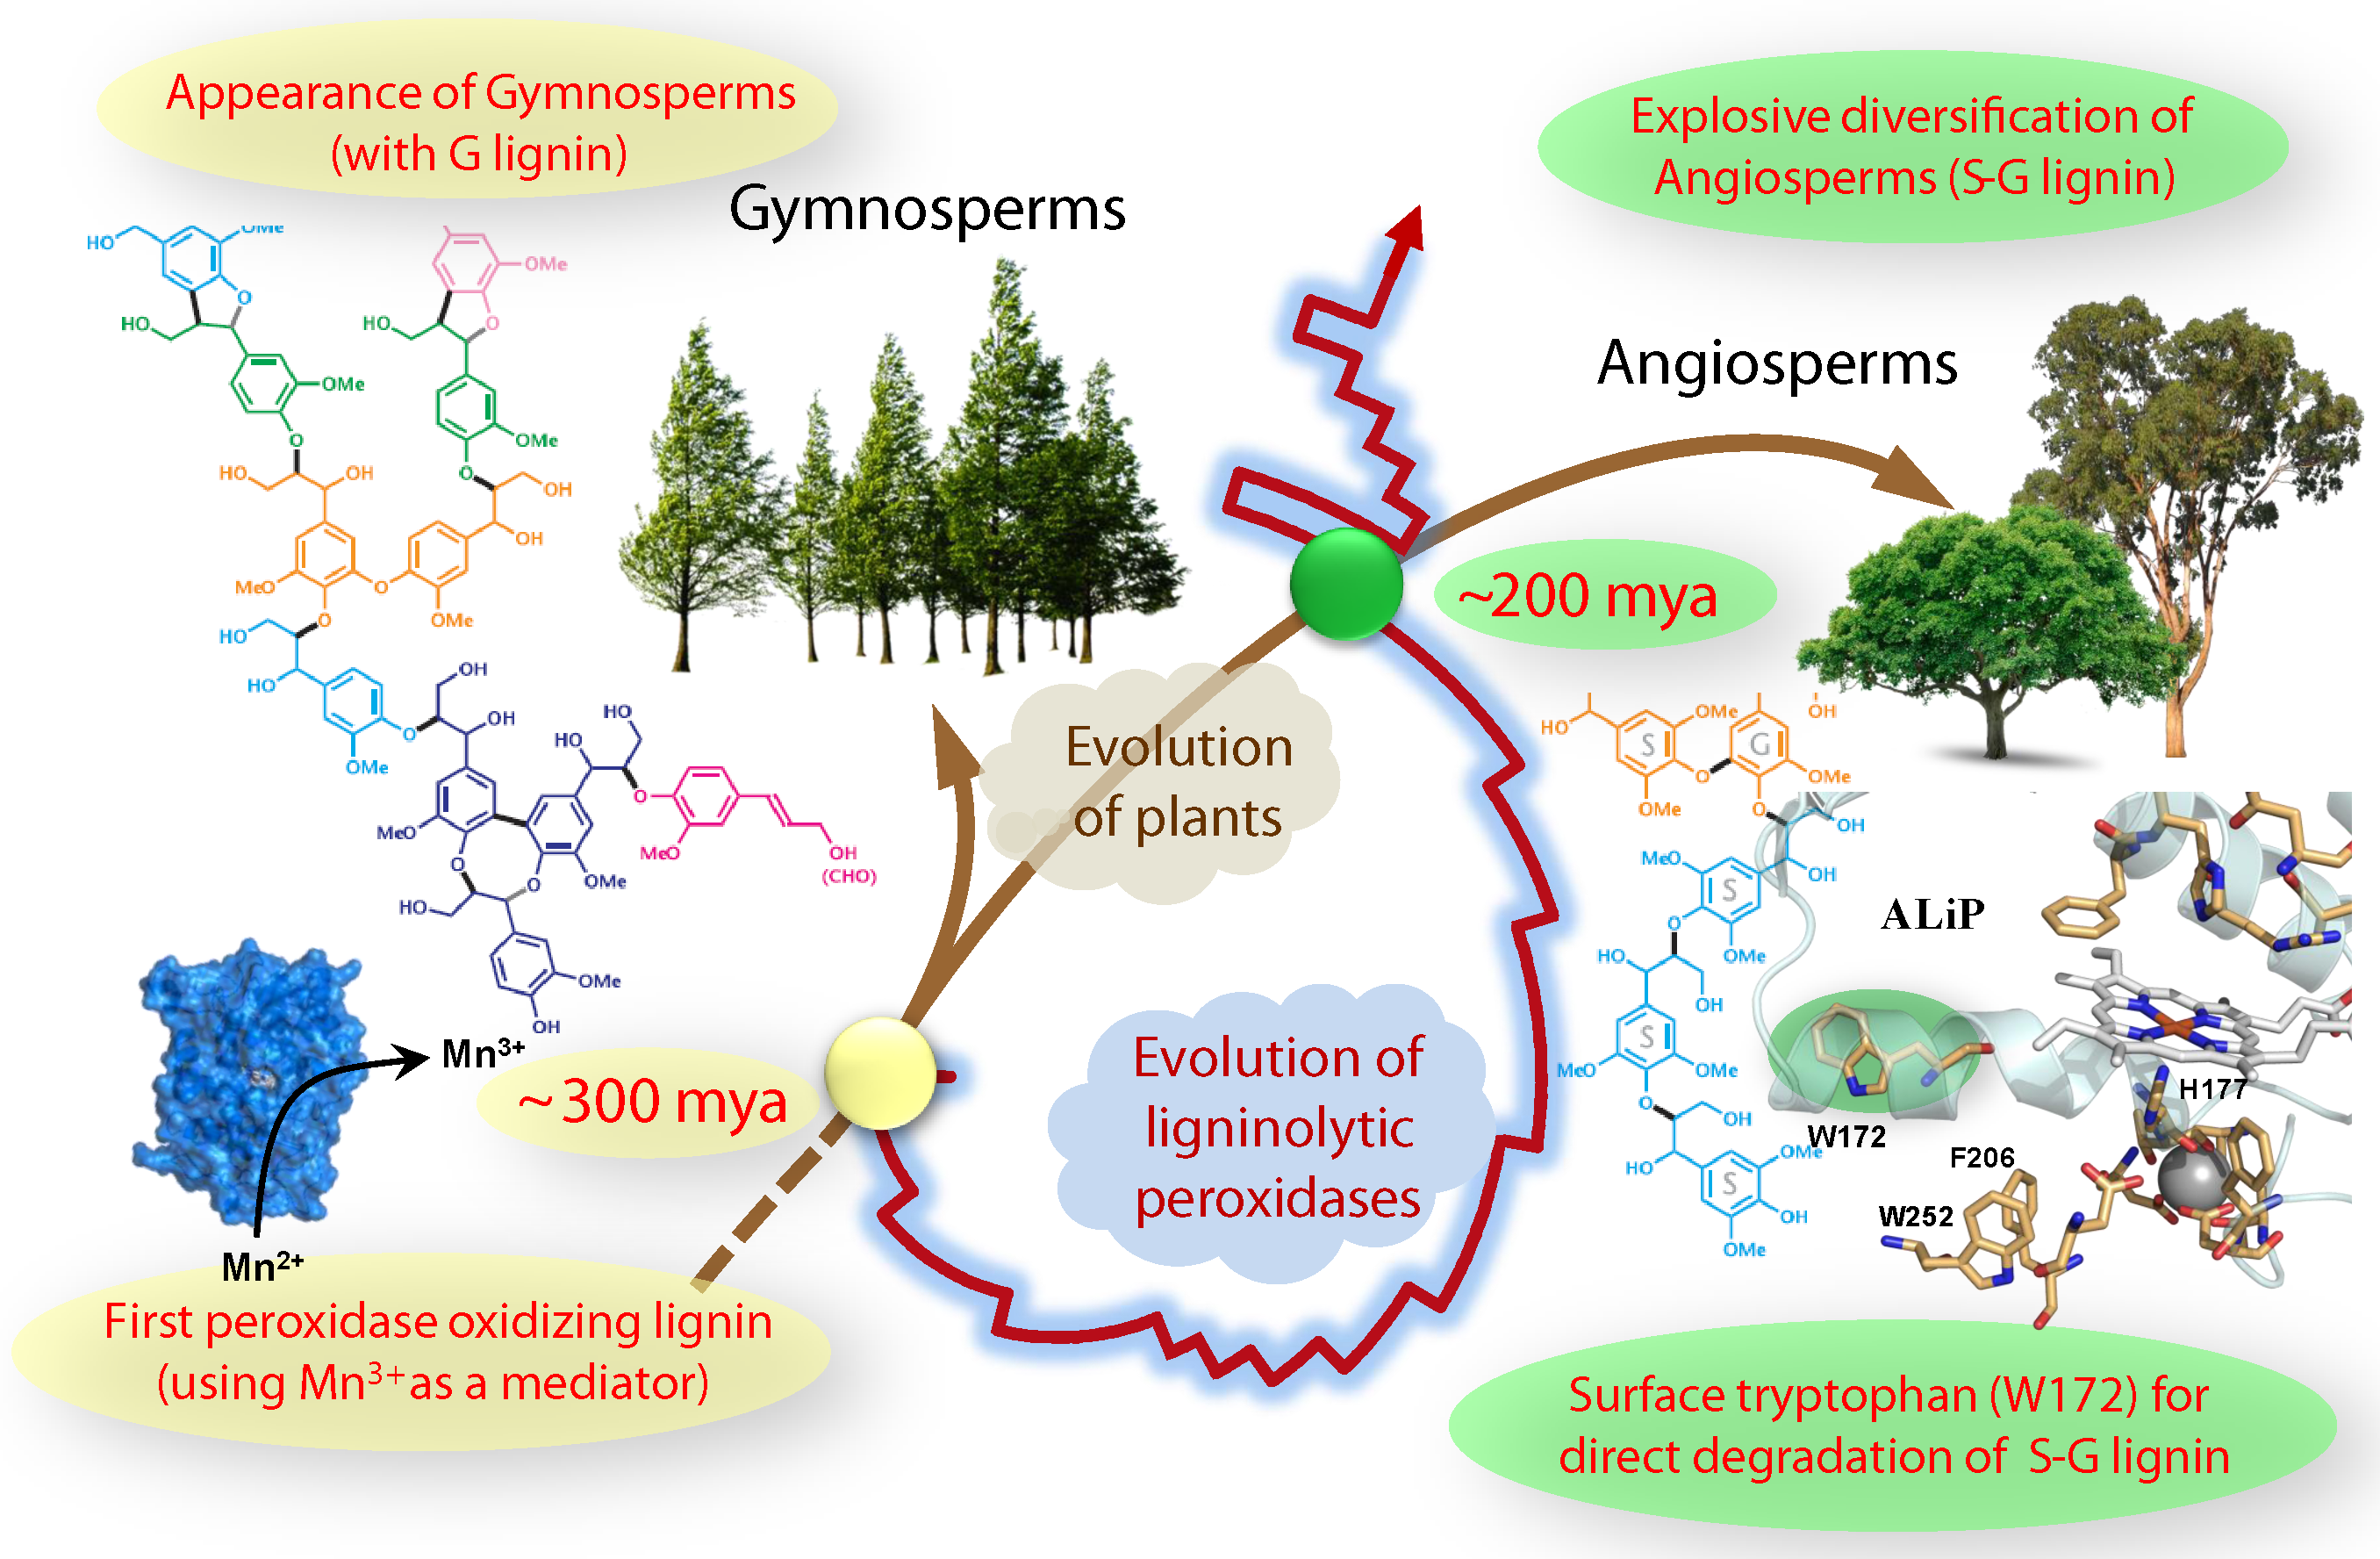 Insights into plants and fungi coevolution